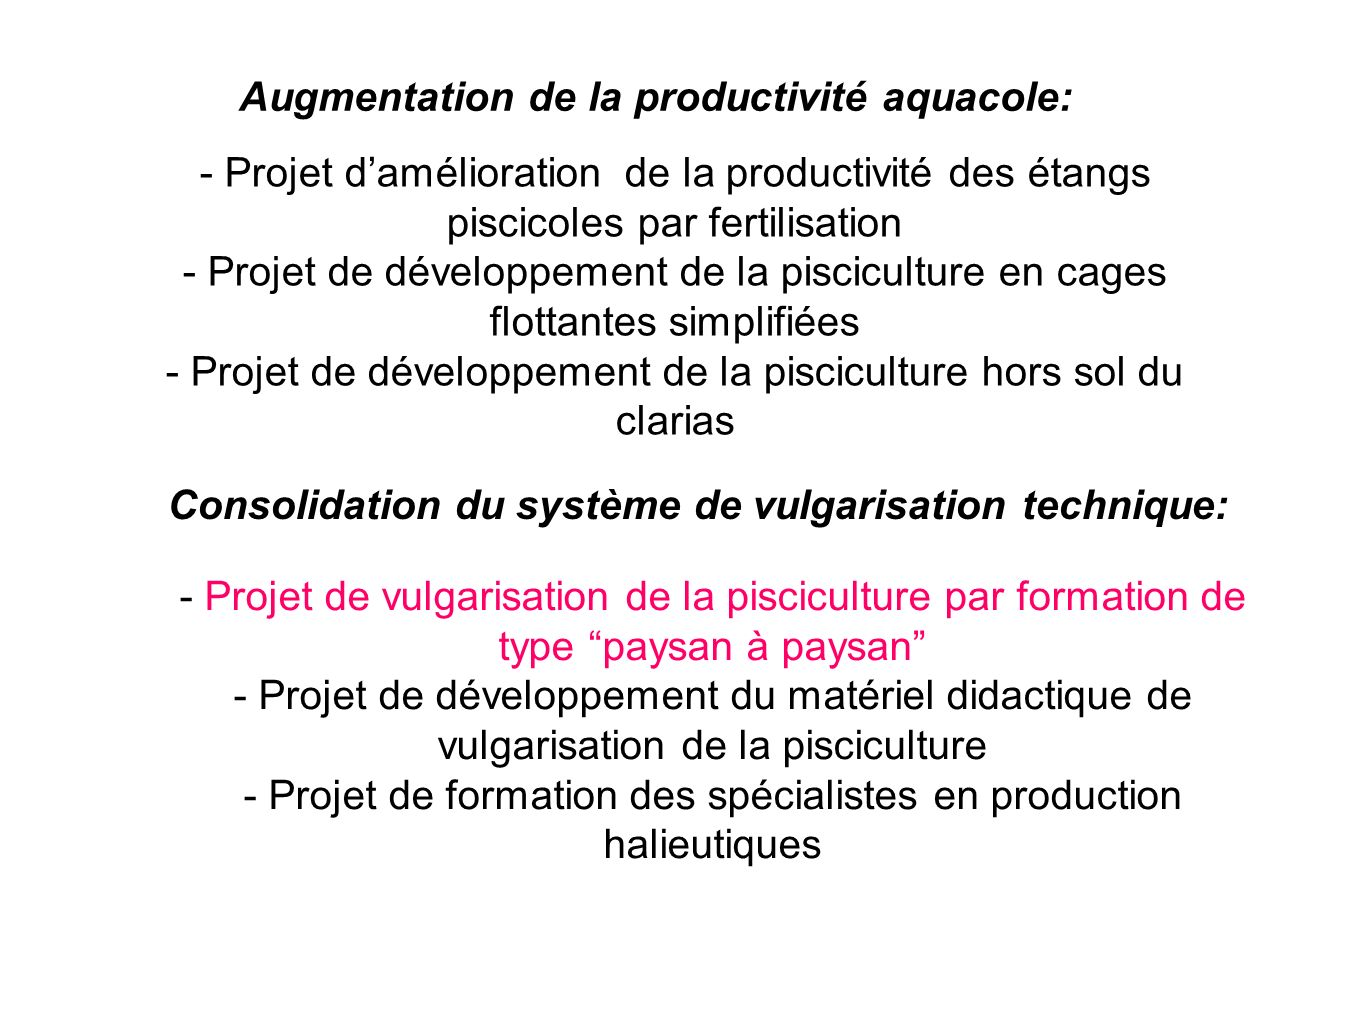 Augmentation de la productivité aquacole: